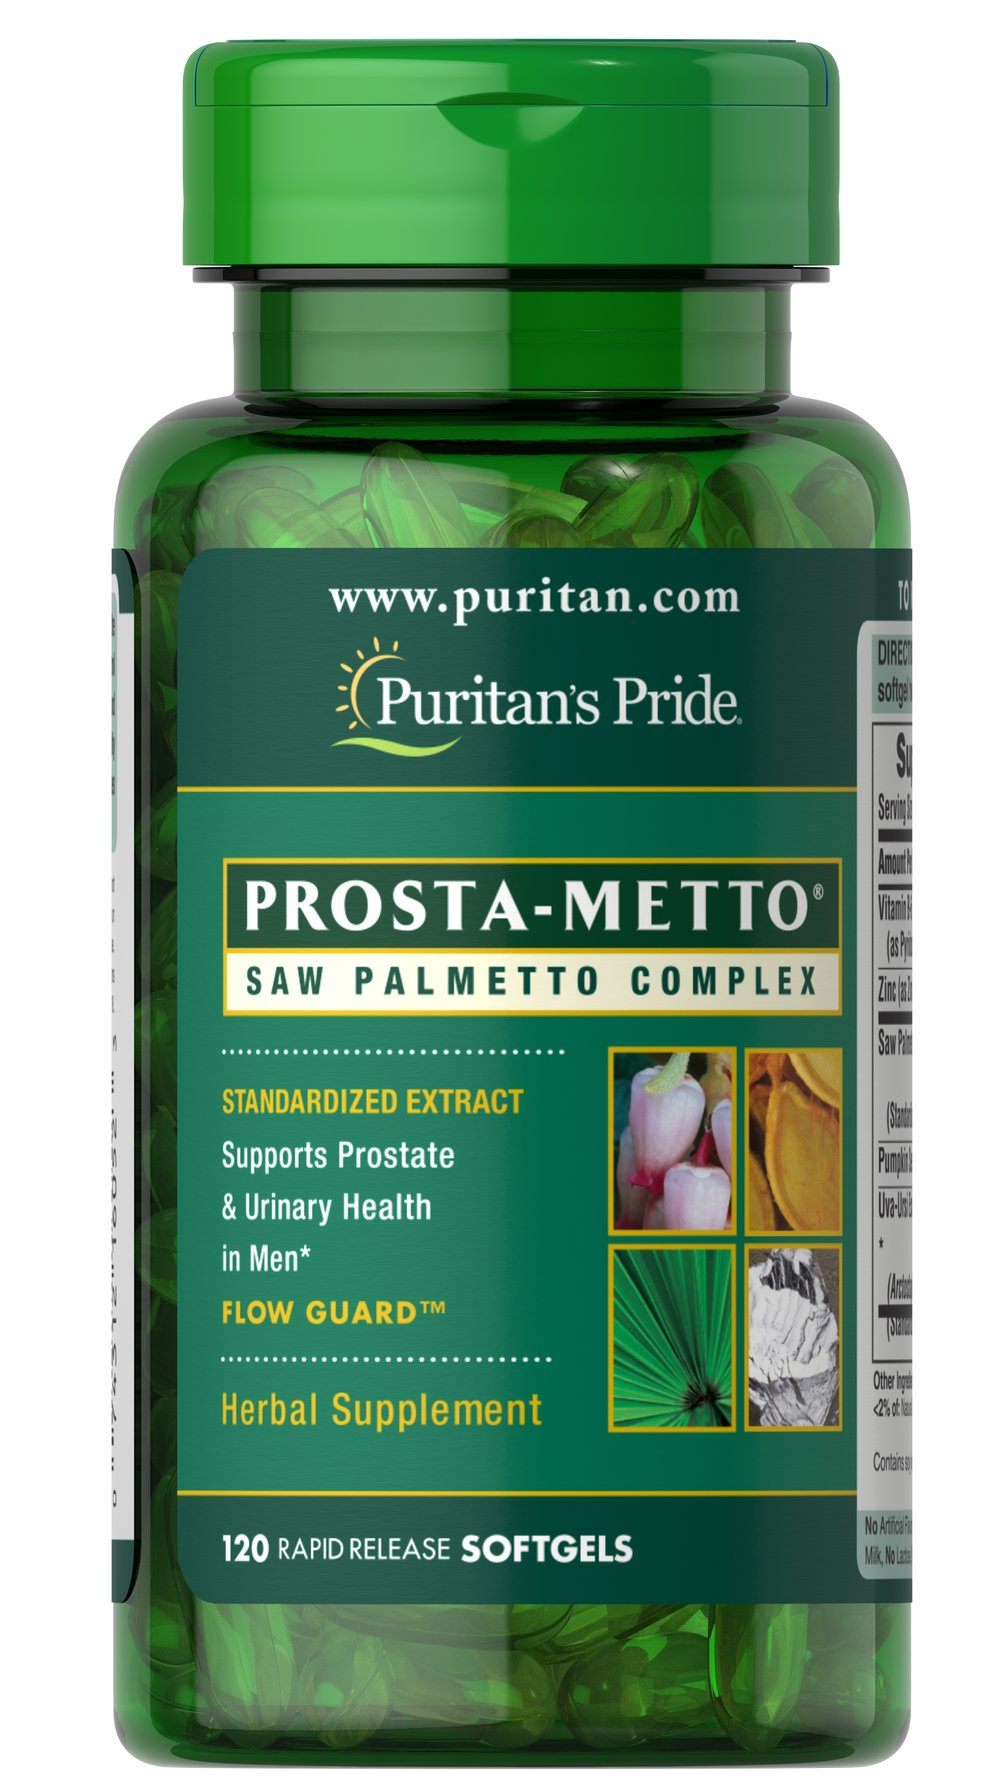 Saw Palmetto Complex For Men <p>Extra Strength Prosta-Metto® softgels deliver 160 mg of standardized Saw Palmetto to support prostate and urinary health in men.** Saw Palmetto is an extract derived from the berry of the Saw Palmetto tree and is the leading herb for men's health.** This formulation also includes Pumpkin Seed Oil, Pygeum and Uva-Ursi, traditional ingredients for men's health, plus Zinc for the immune system.** </p>  120 Softgels  $26.79